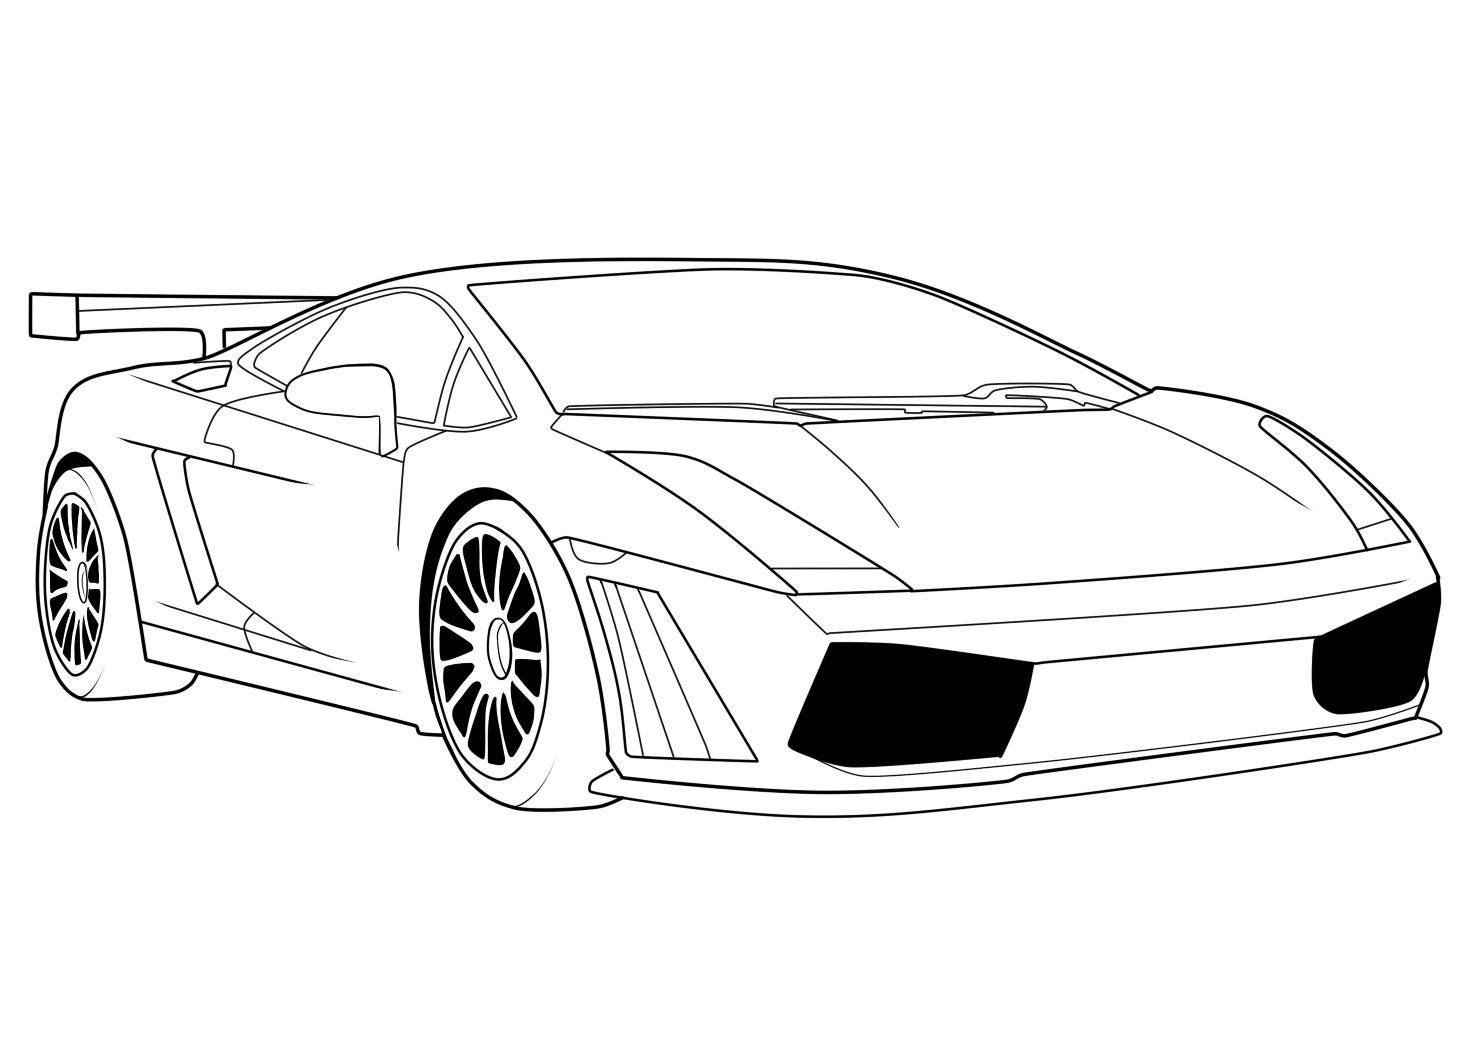 Free printable lamborghini coloring pages for kids for Cars coloring pages free printable